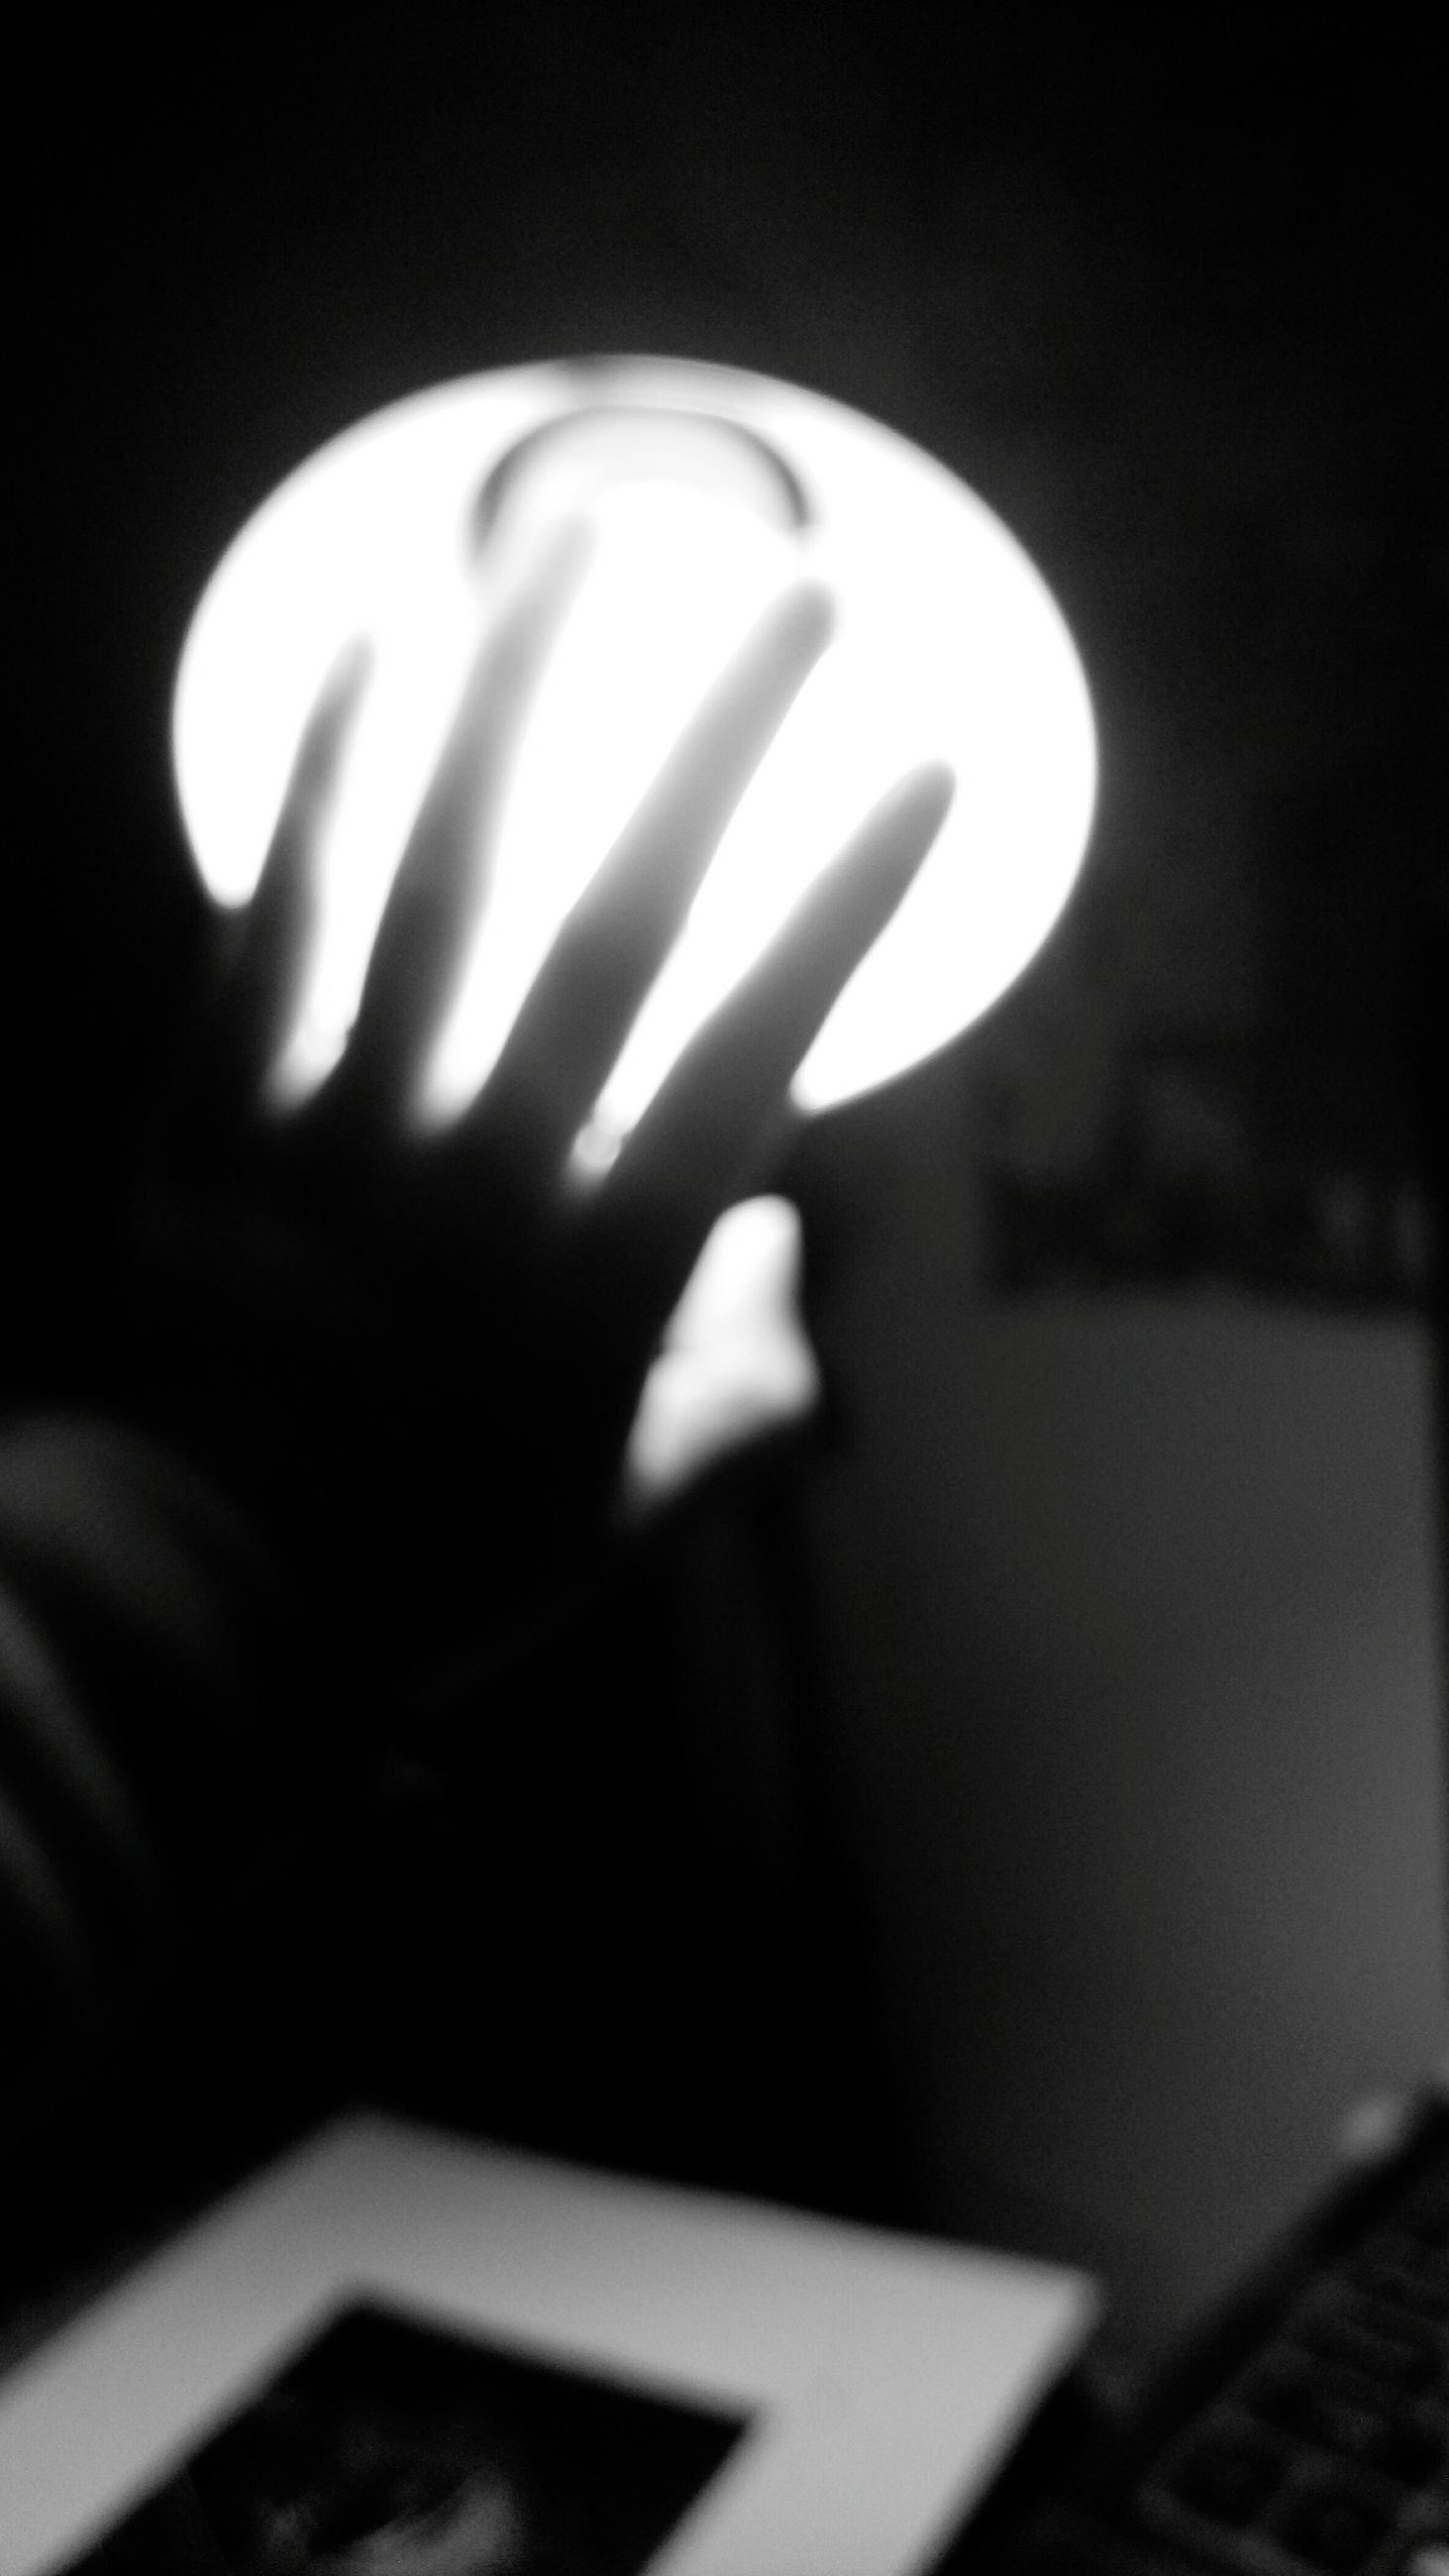 person, indoors, close-up, focus on foreground, part of, cropped, selective focus, human finger, unrecognizable person, communication, holding, defocused, night, dark, shadow, copy space, wall - building feature